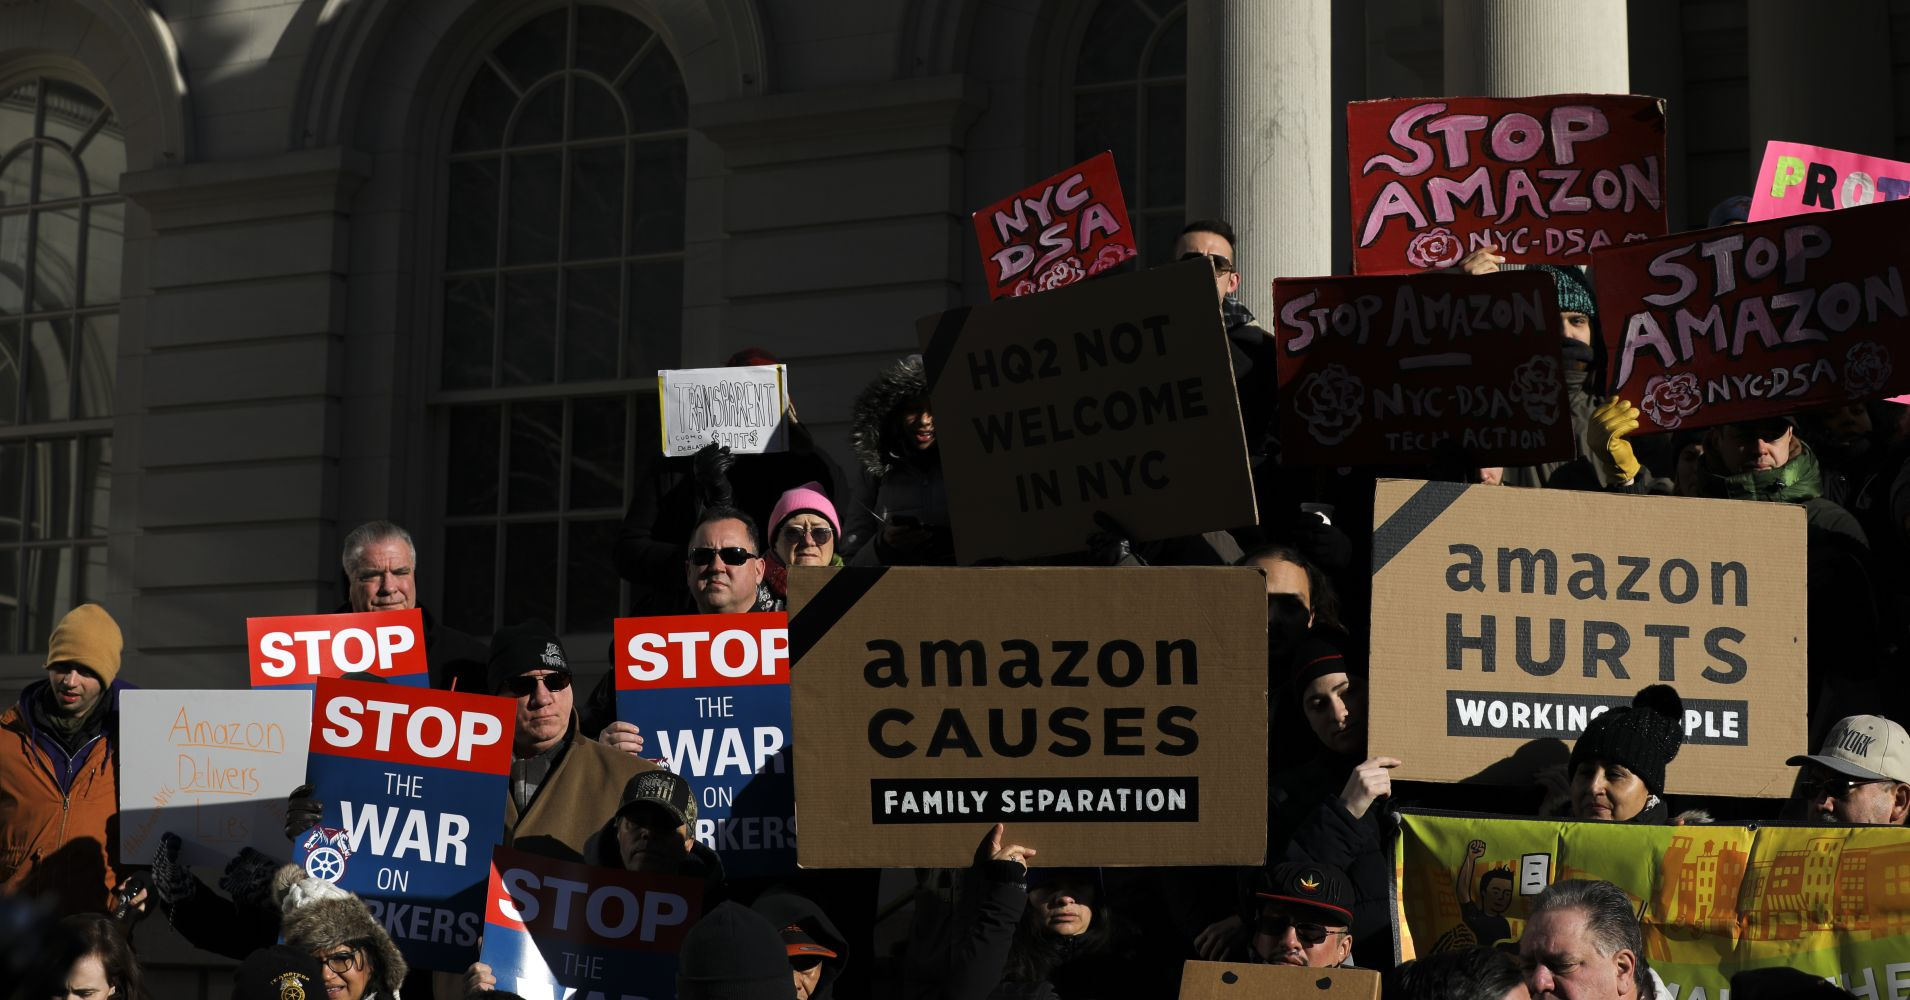 'This is a union town' — NYC councilman says Amazon's HQ2 is 'antithetical' to our values